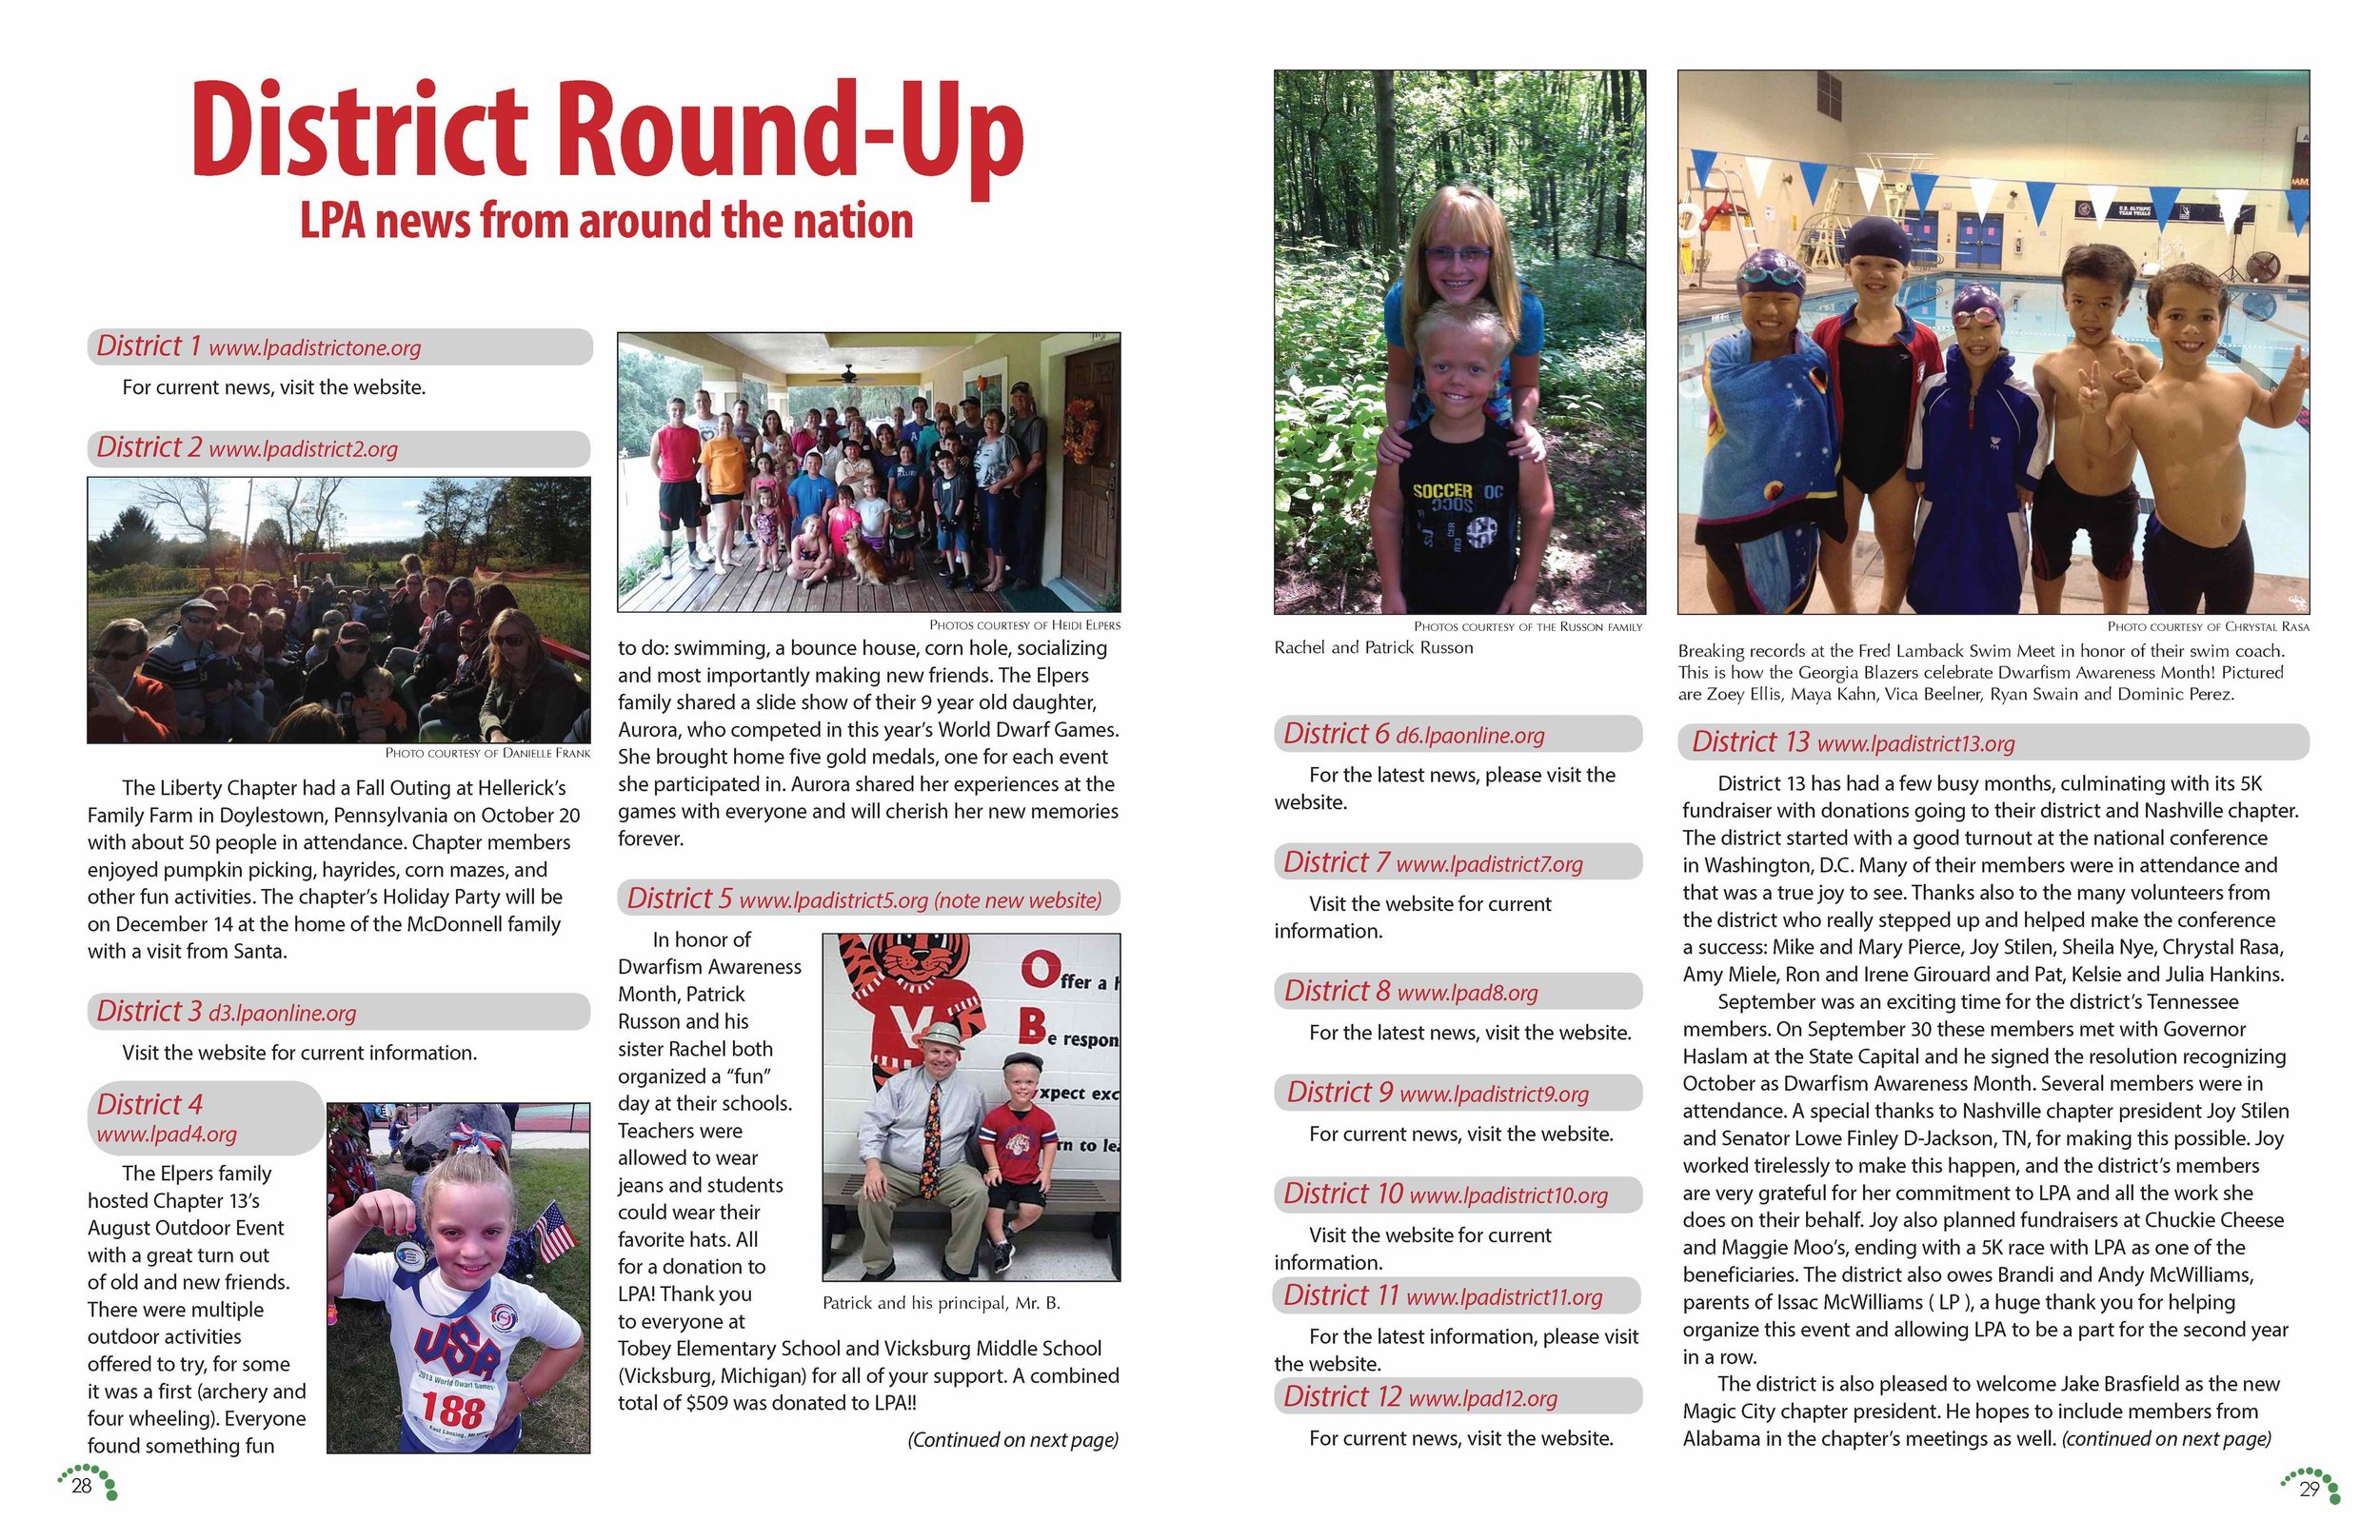 LPA Today Magazine  Pages 28 and 29, Volume 44 Issue 2